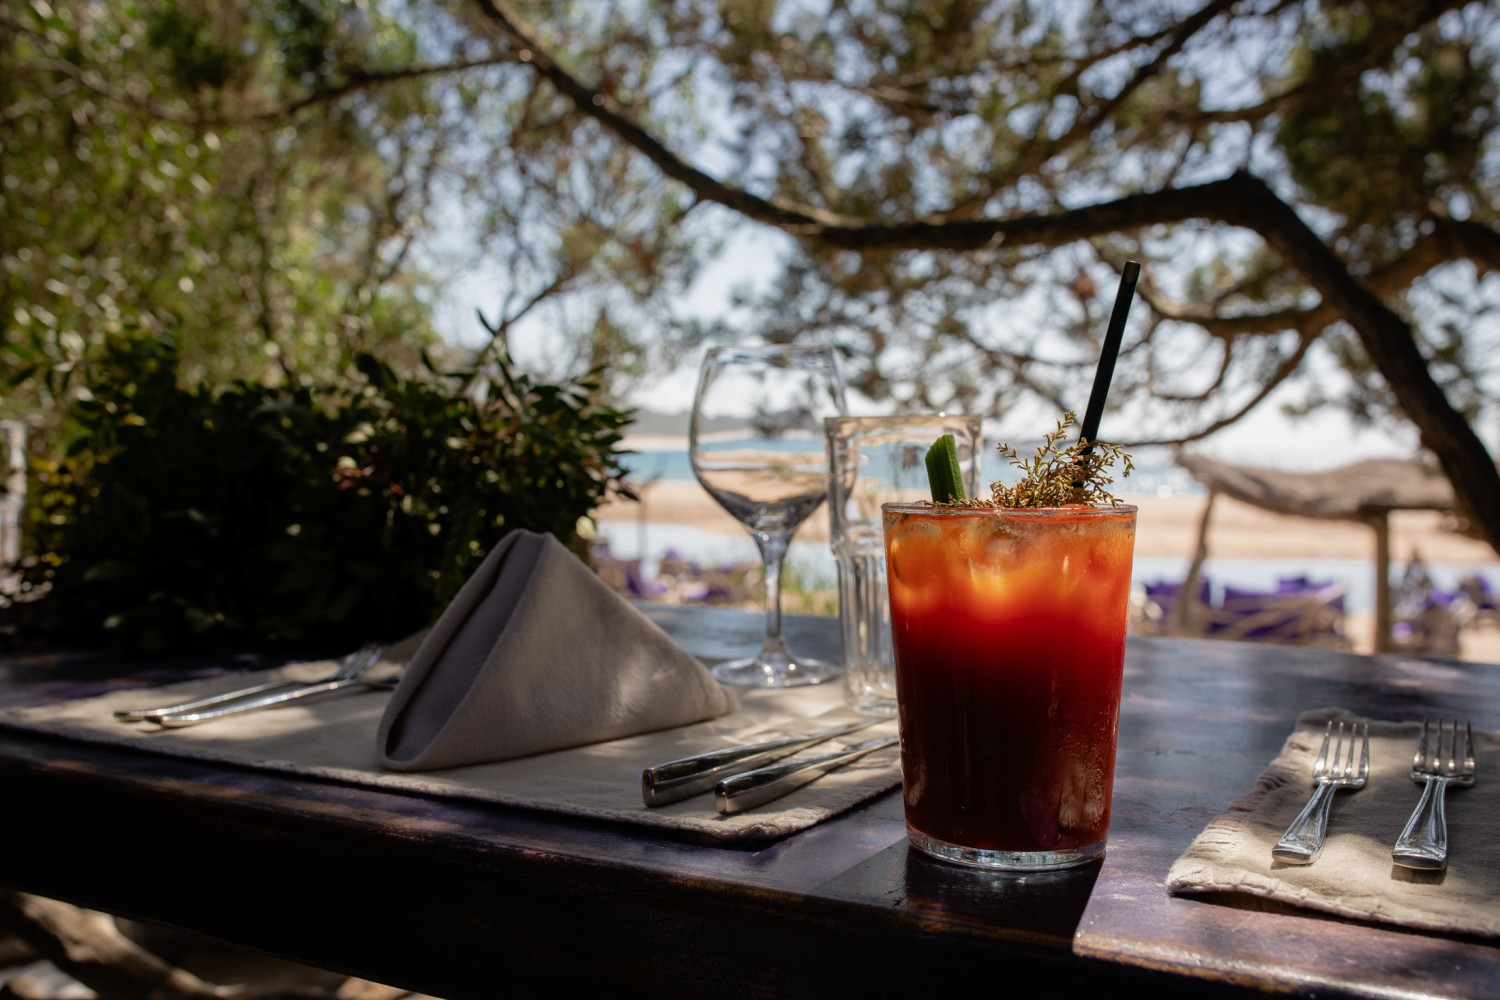 Littleton-Rose-Luxury-Destination-Wedding-Planner-Corsica-Justine-and-Tom-Bloody-Mary-Beach-Brunch.jpg